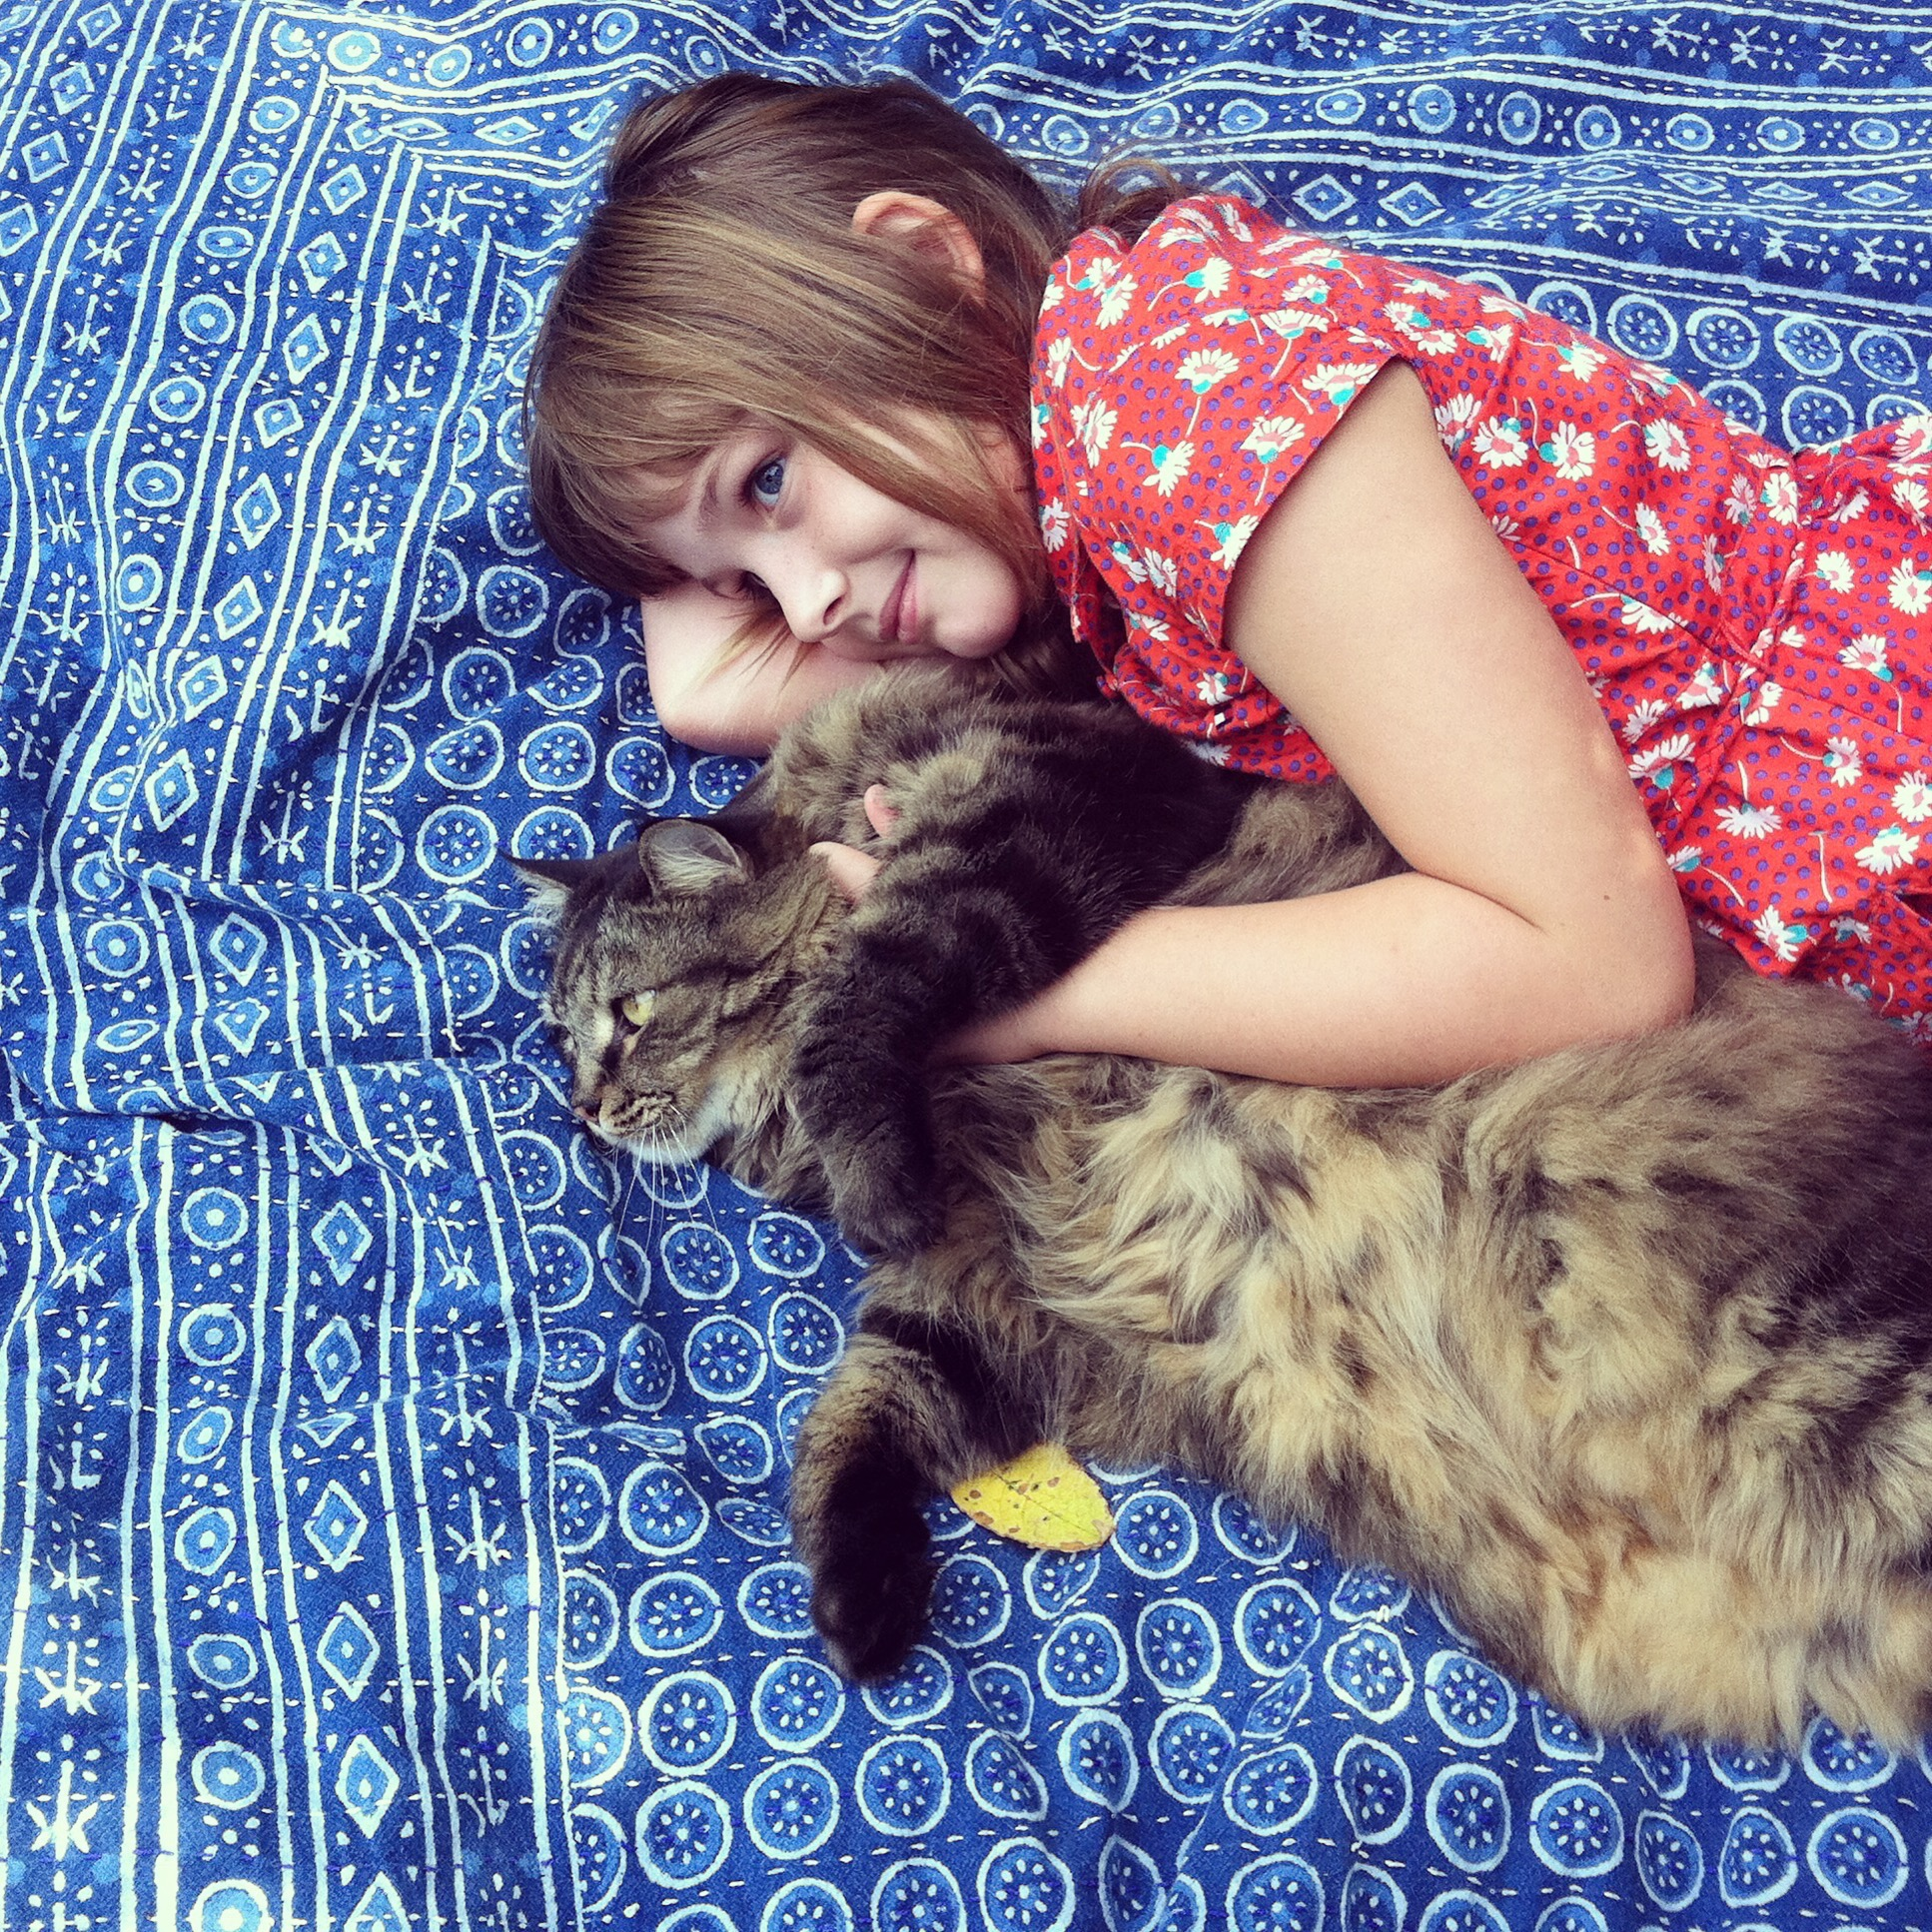 Portrait of a little girl in a red dress cuddling and hugging her enormous Maine Coon cat with love and affection as they lay on a blue and white patterned blanket in a garden. Childhood. Friendship.